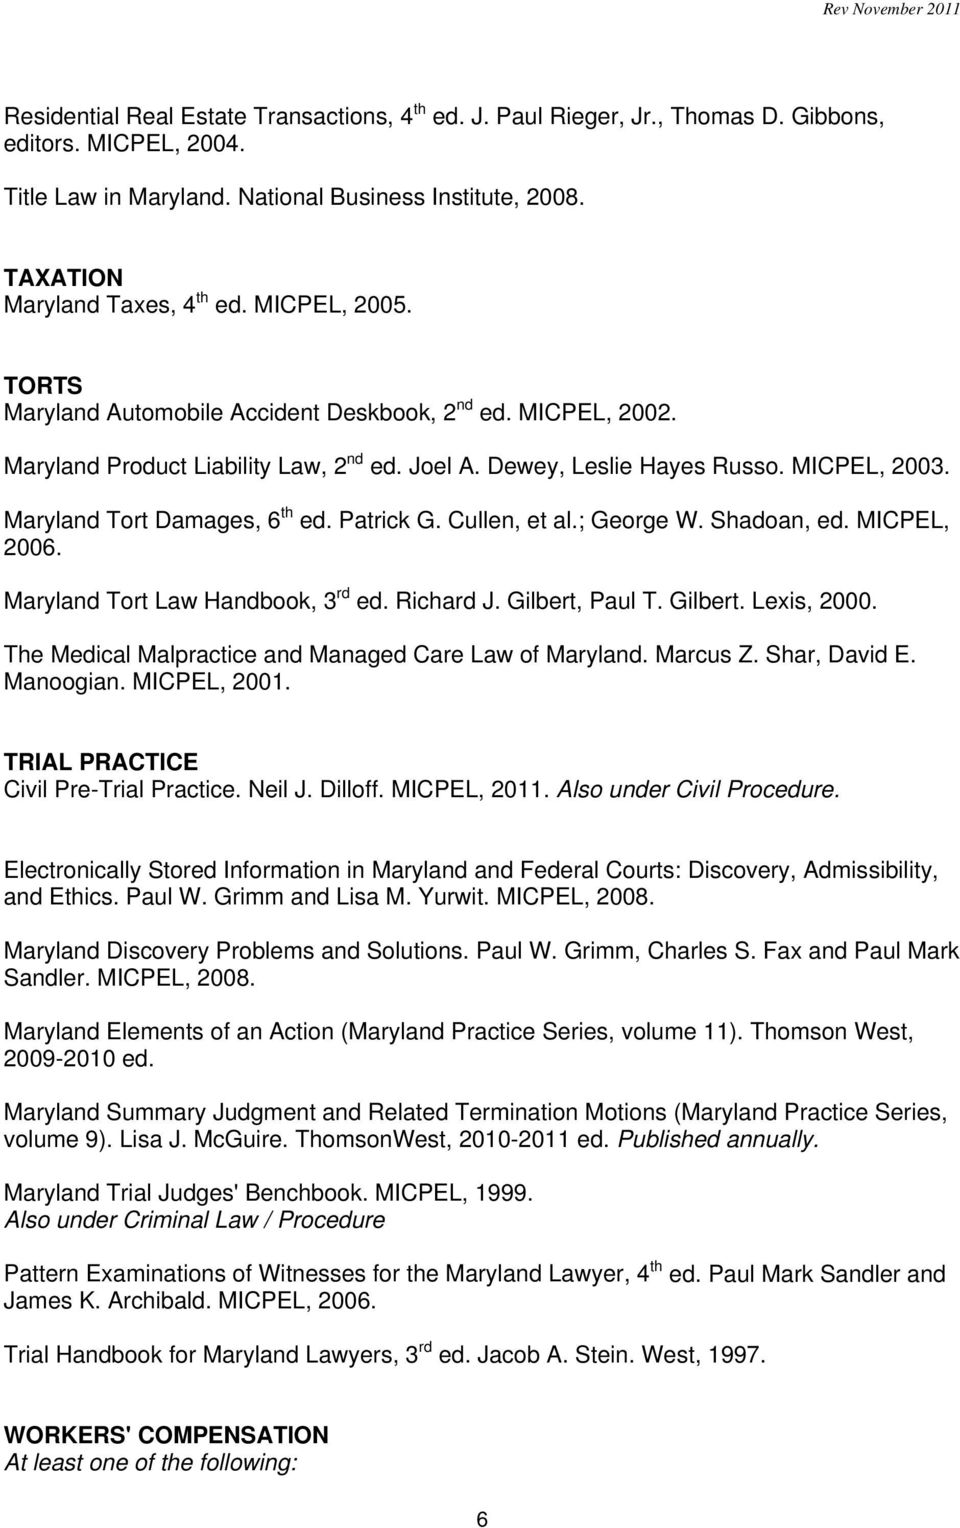 MICPEL, 2003. Maryland Tort Damages, 6 th ed. Patrick G. Cullen, et al.; George W. Shadoan, ed. MICPEL, 2006. Maryland Tort Law Handbook, 3 rd ed. Richard J. Gilbert, Paul T. Gilbert. Lexis, 2000.